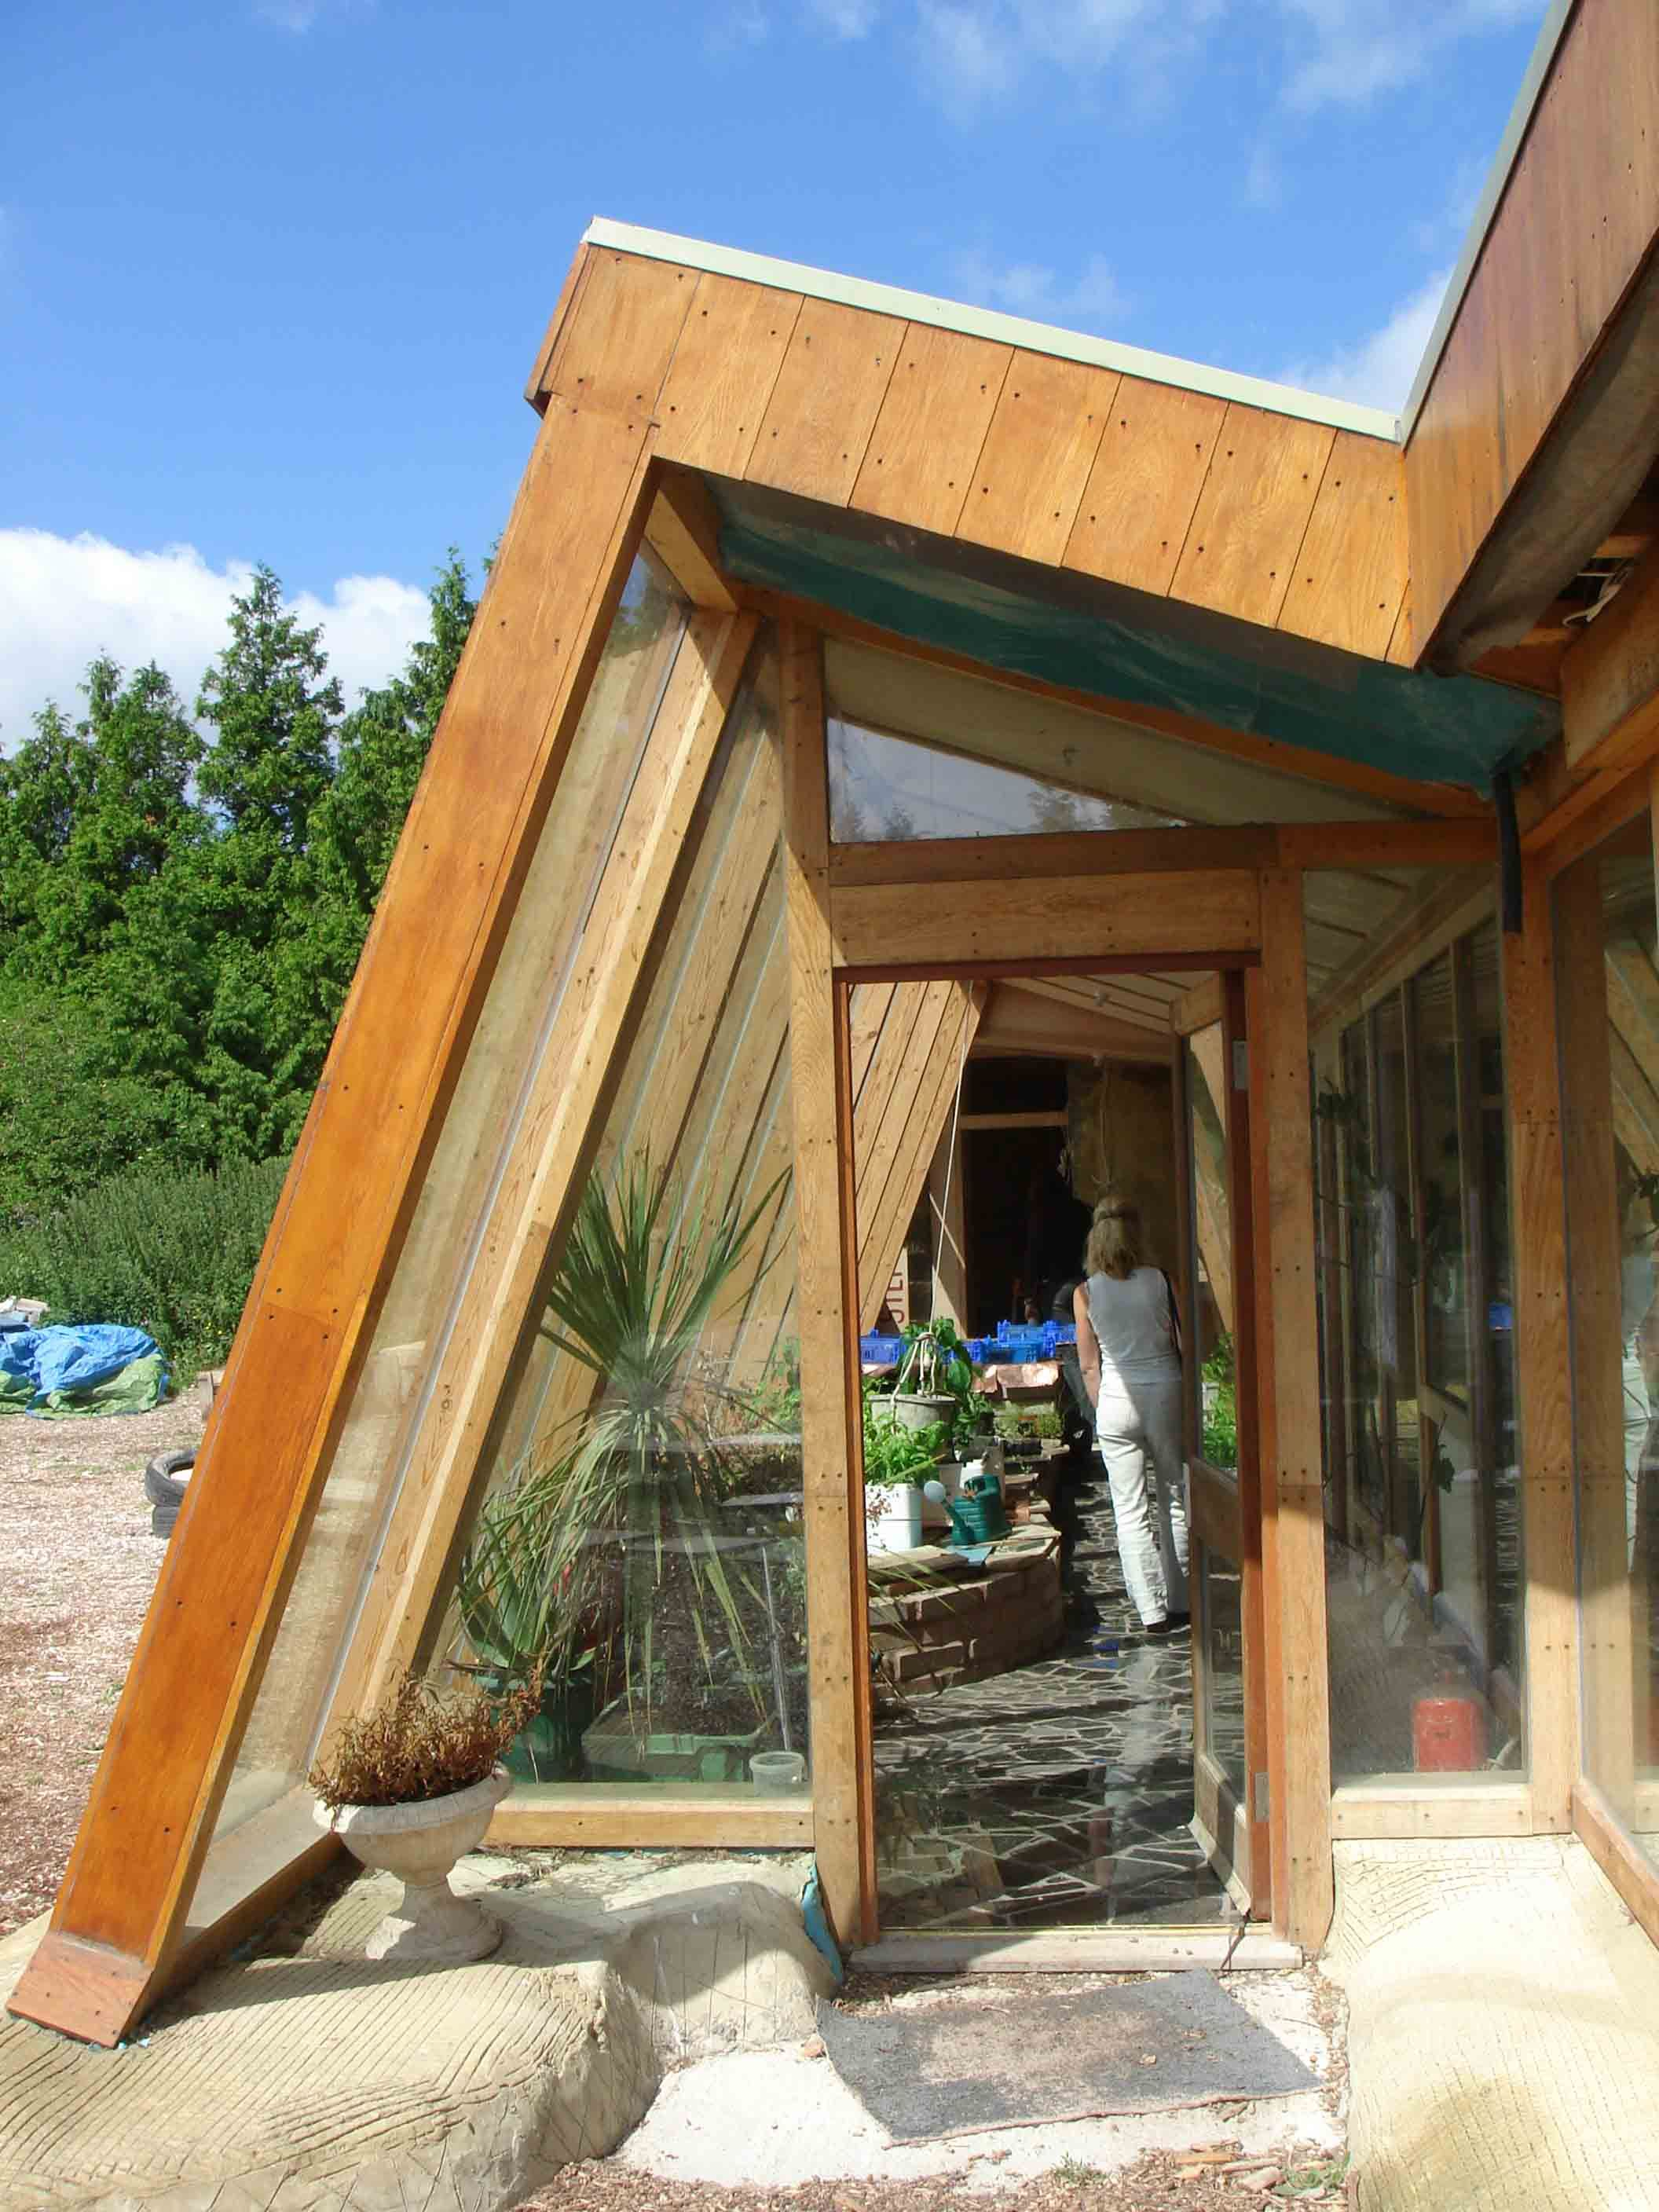 Brighton Earthship Entrance Passive Solar Greenhouse Facade That Could Perhaps Be Added To An Ordinary Home Earthship Home Earthship Earth Homes